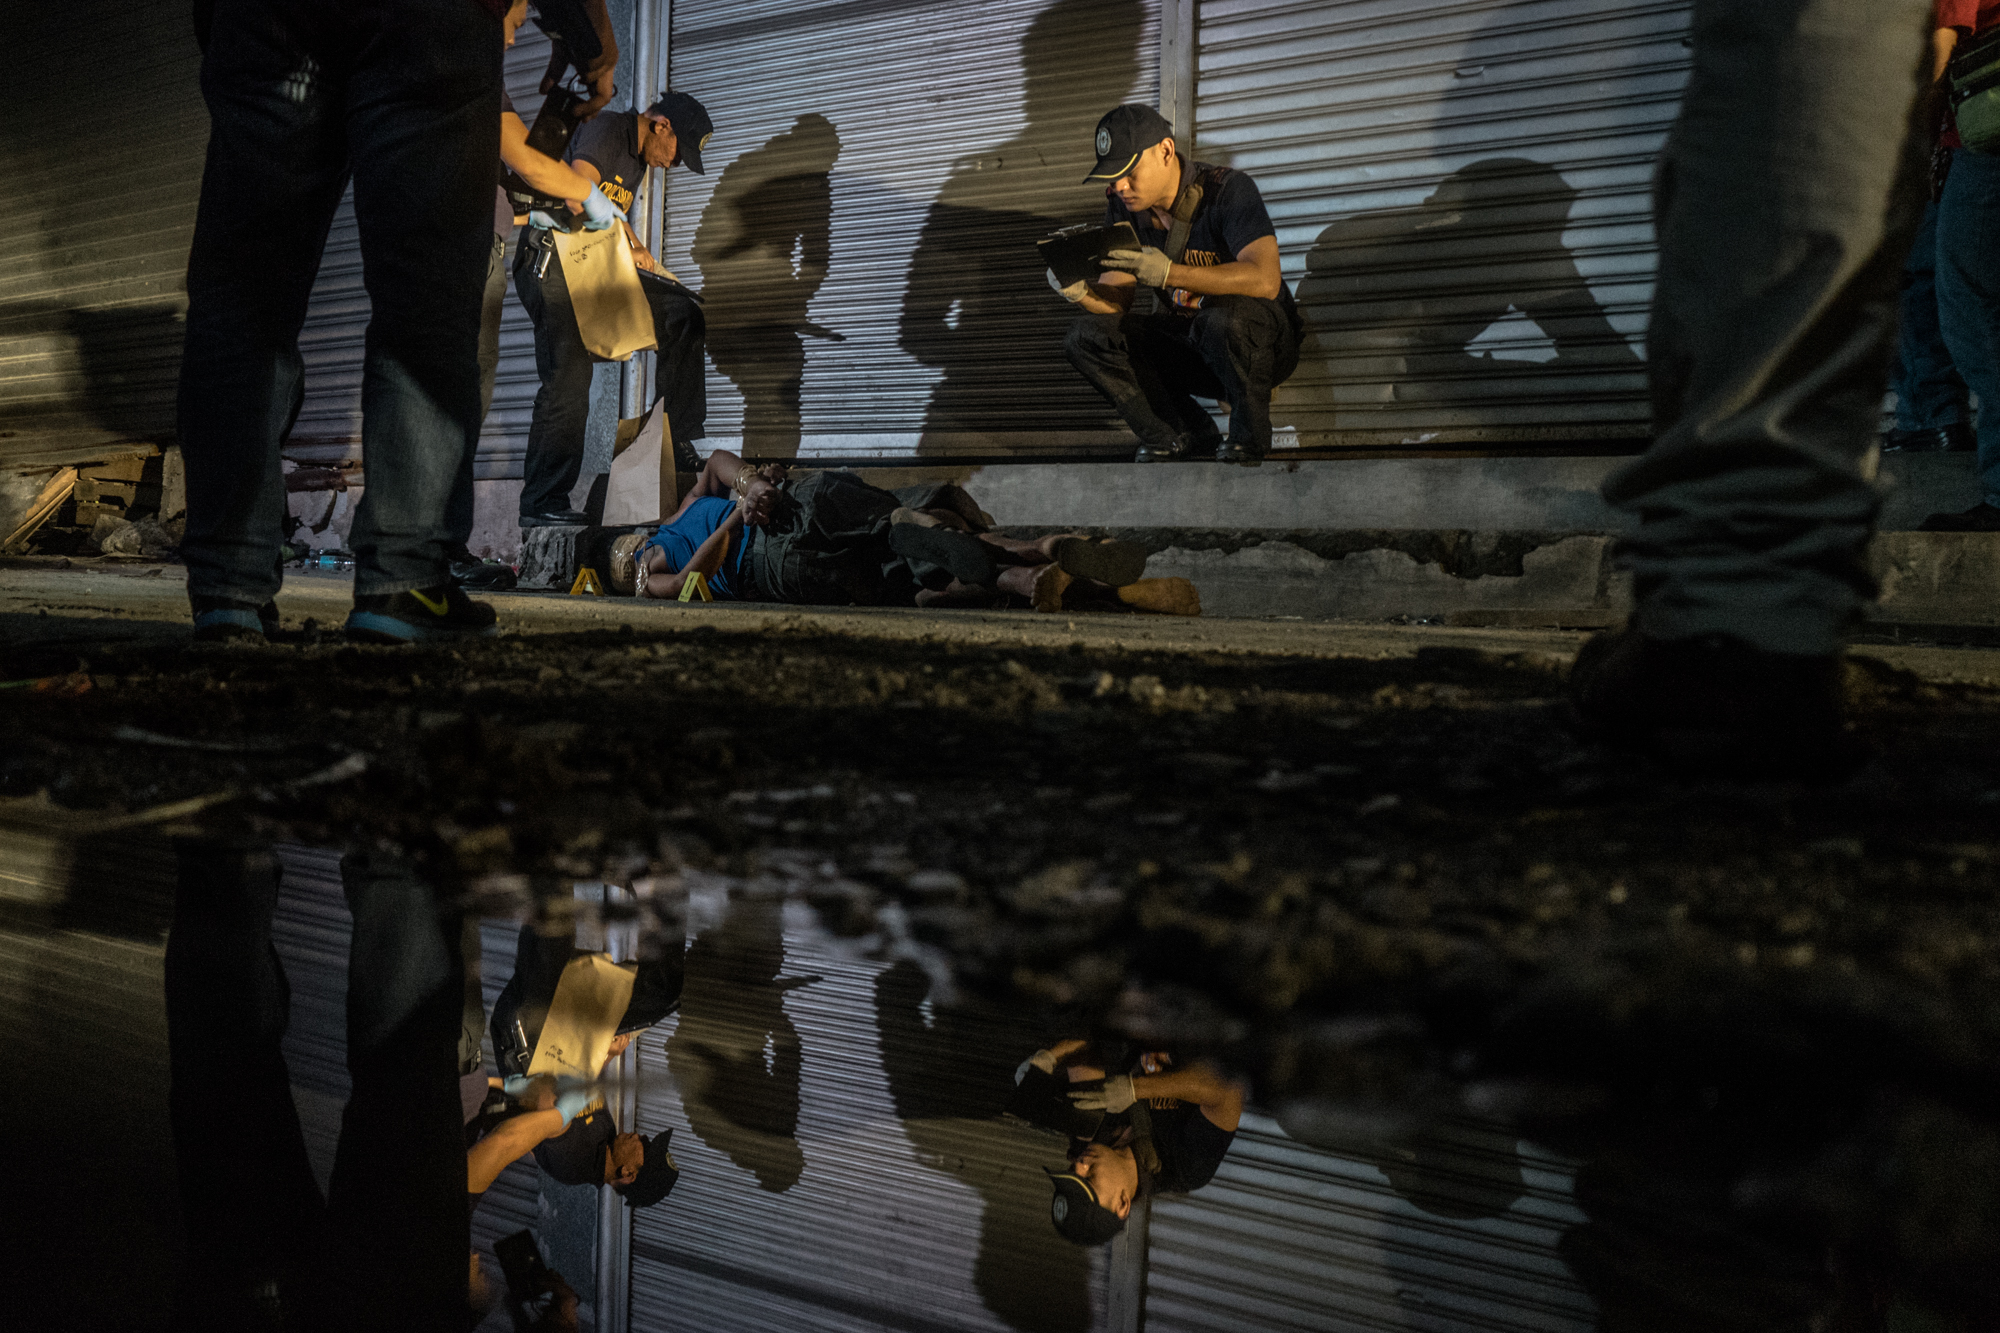 Police examine dead bodies on Thursday, November 17, 2016 in Metro Manila, Philippines. Philippine President Rodrigo Duterte has been widely criticized by international human rights organizations for his 'War on Drugs' which has taken thousands of lives since he took office, but his approval rating remains positive among the majority of Filipinos, especially the poor and the working class.